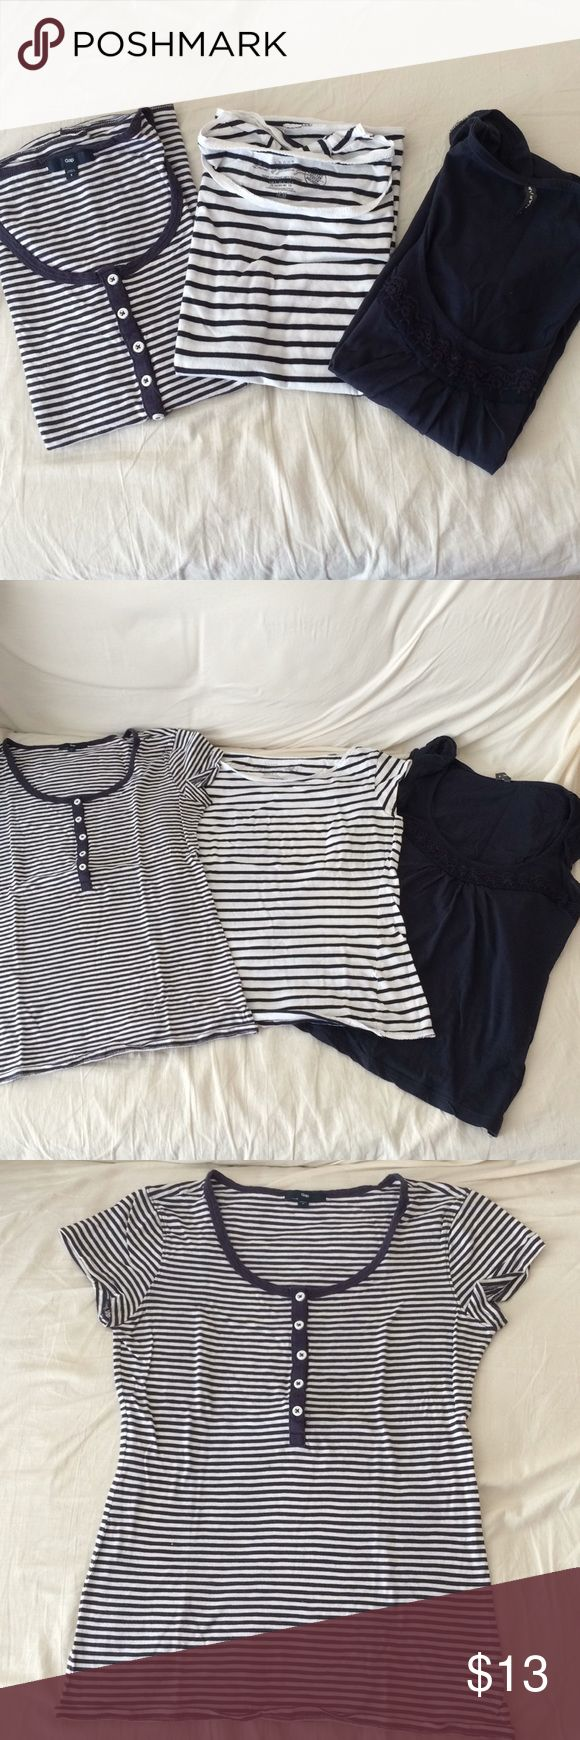 Bundle 3 T-shirt Bundle 3 T-Shirt Size: S In good condition Brands: (In order) Gap, H&M and Naf Naf  **Offers and Bundle are welcome!** Tops Tees - Short Sleeve